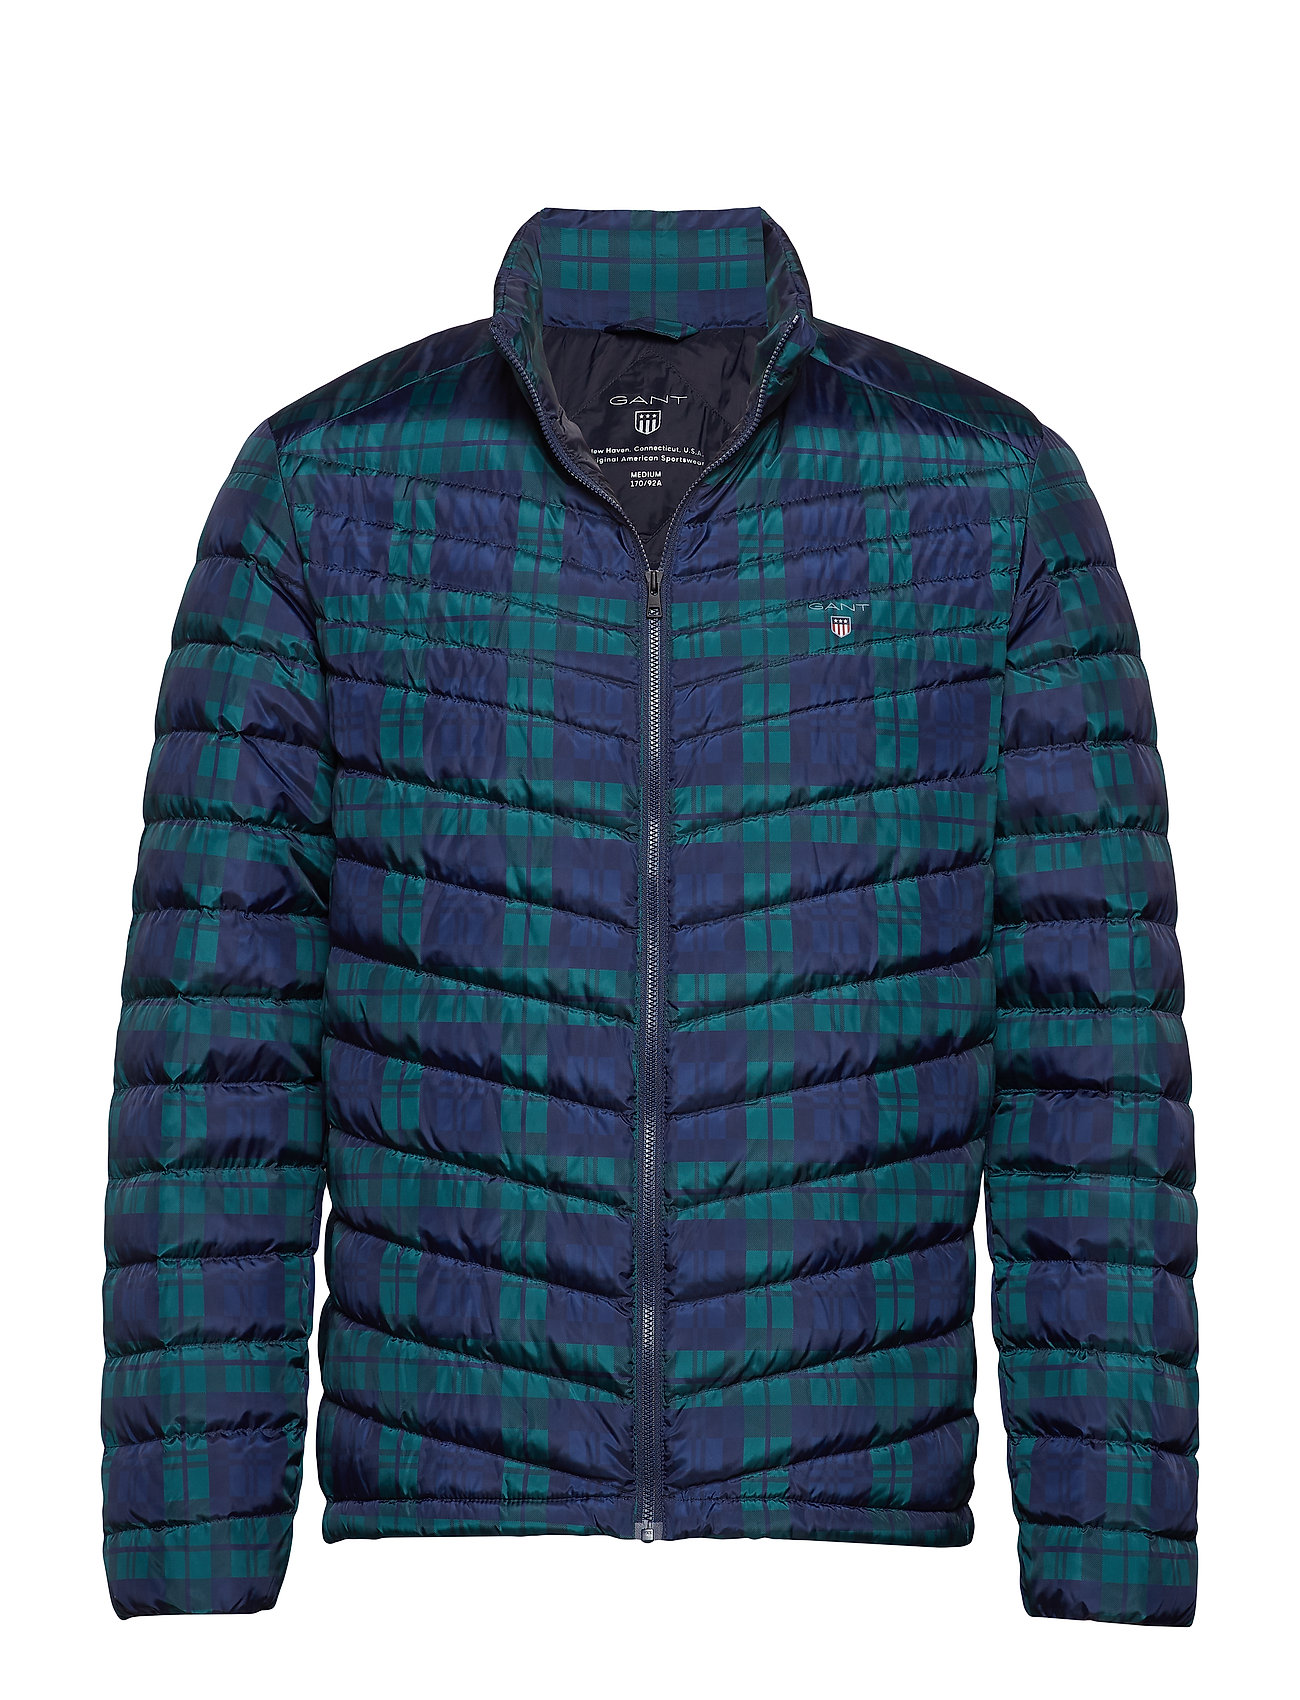 GANT O1. THE BLACKWATCH AIRLIGHT JACKET